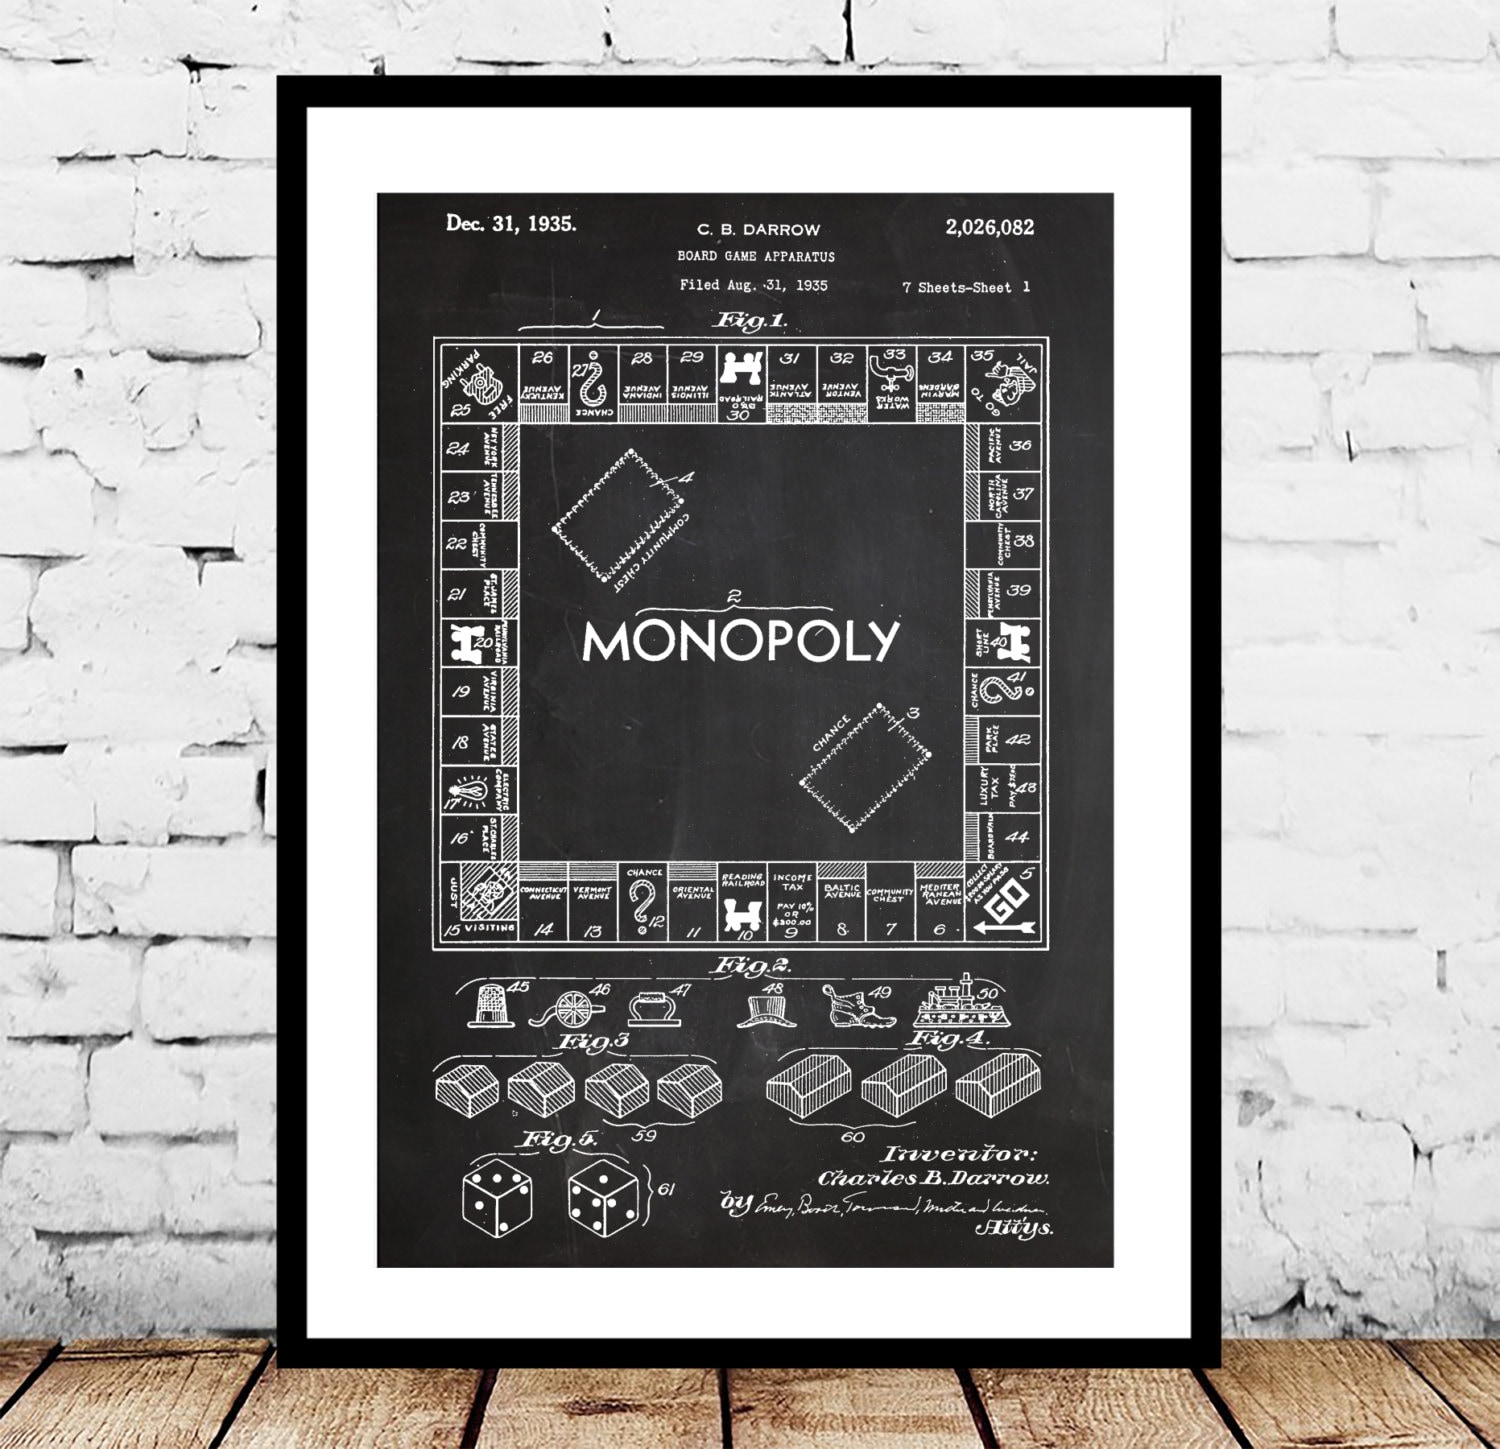 Monopoly poster monopoly patent monopoly print monopoly art monopoly poster monopoly patent monopoly print monopoly art monopoly blueprint monopoly wall art board game malvernweather Gallery